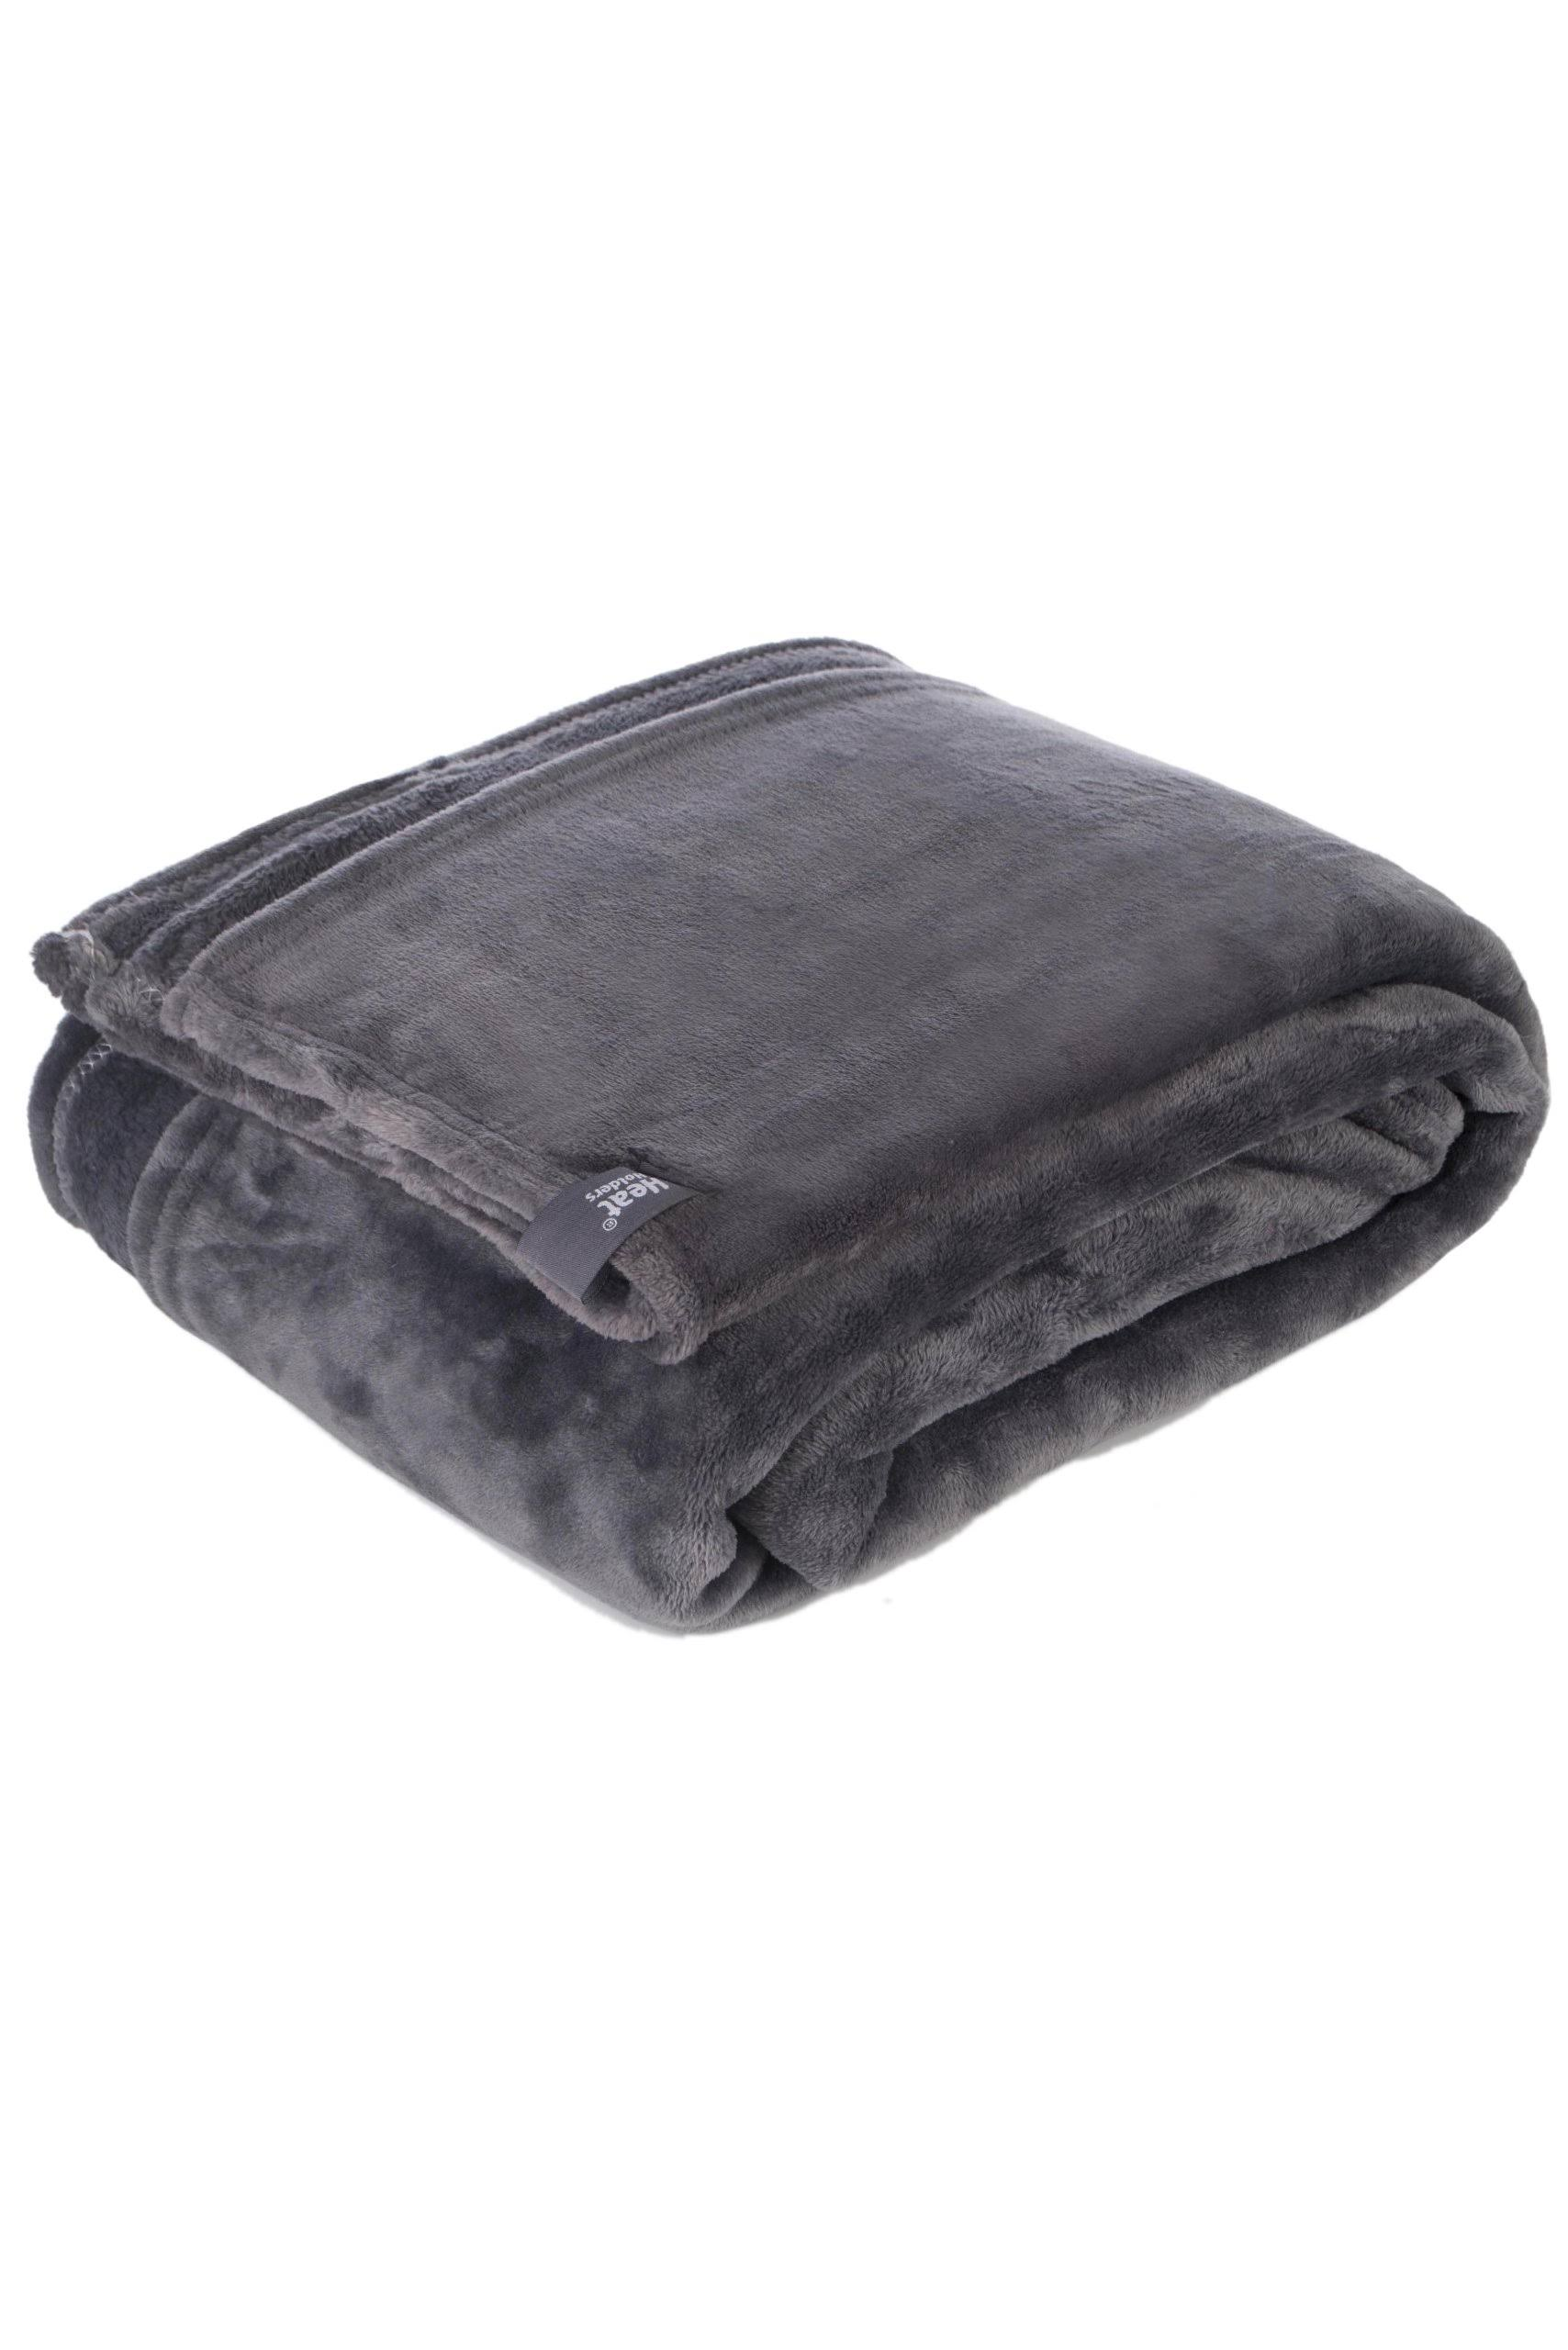 Heat Holder Thermal Soft Fleece Blanket - Antique Silver, 180cm X 200cm